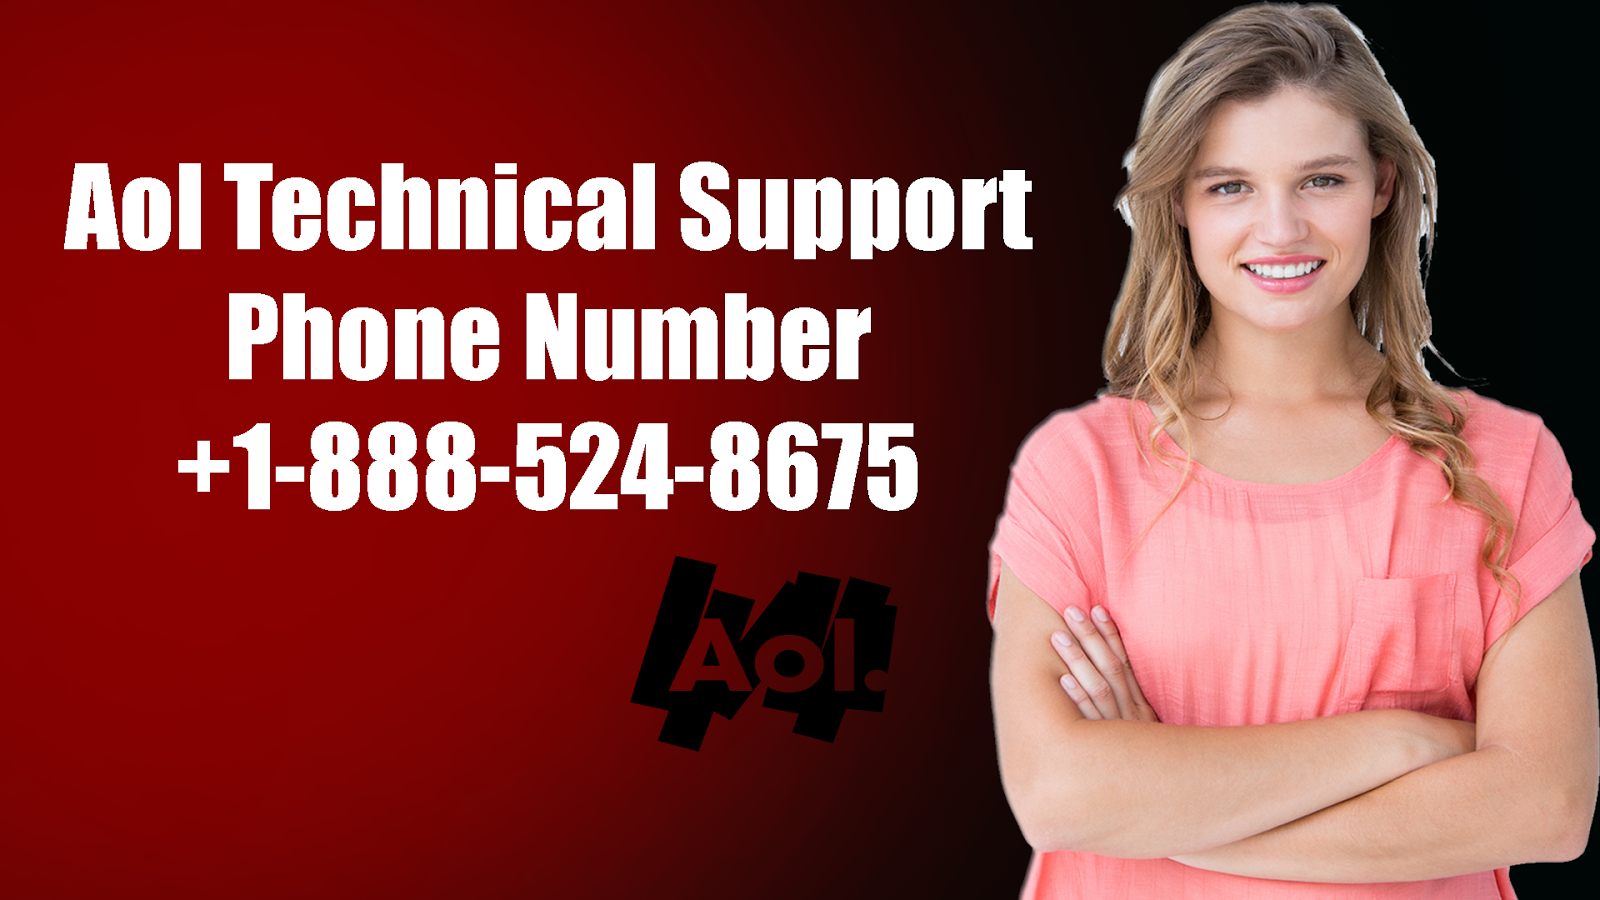 aol customer service number usa +1-888-524-8675